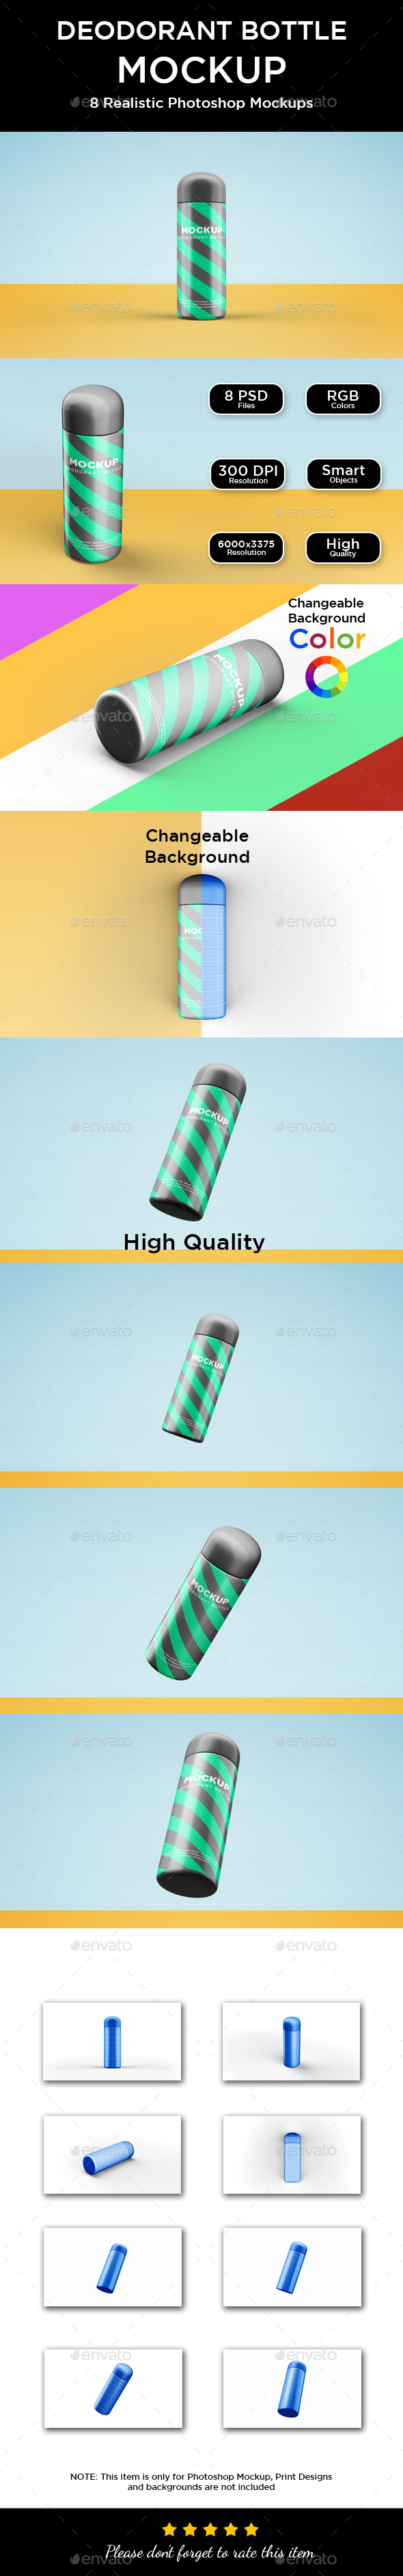 Deodorant Bottle Mockup - Packaging Product Mock-Ups